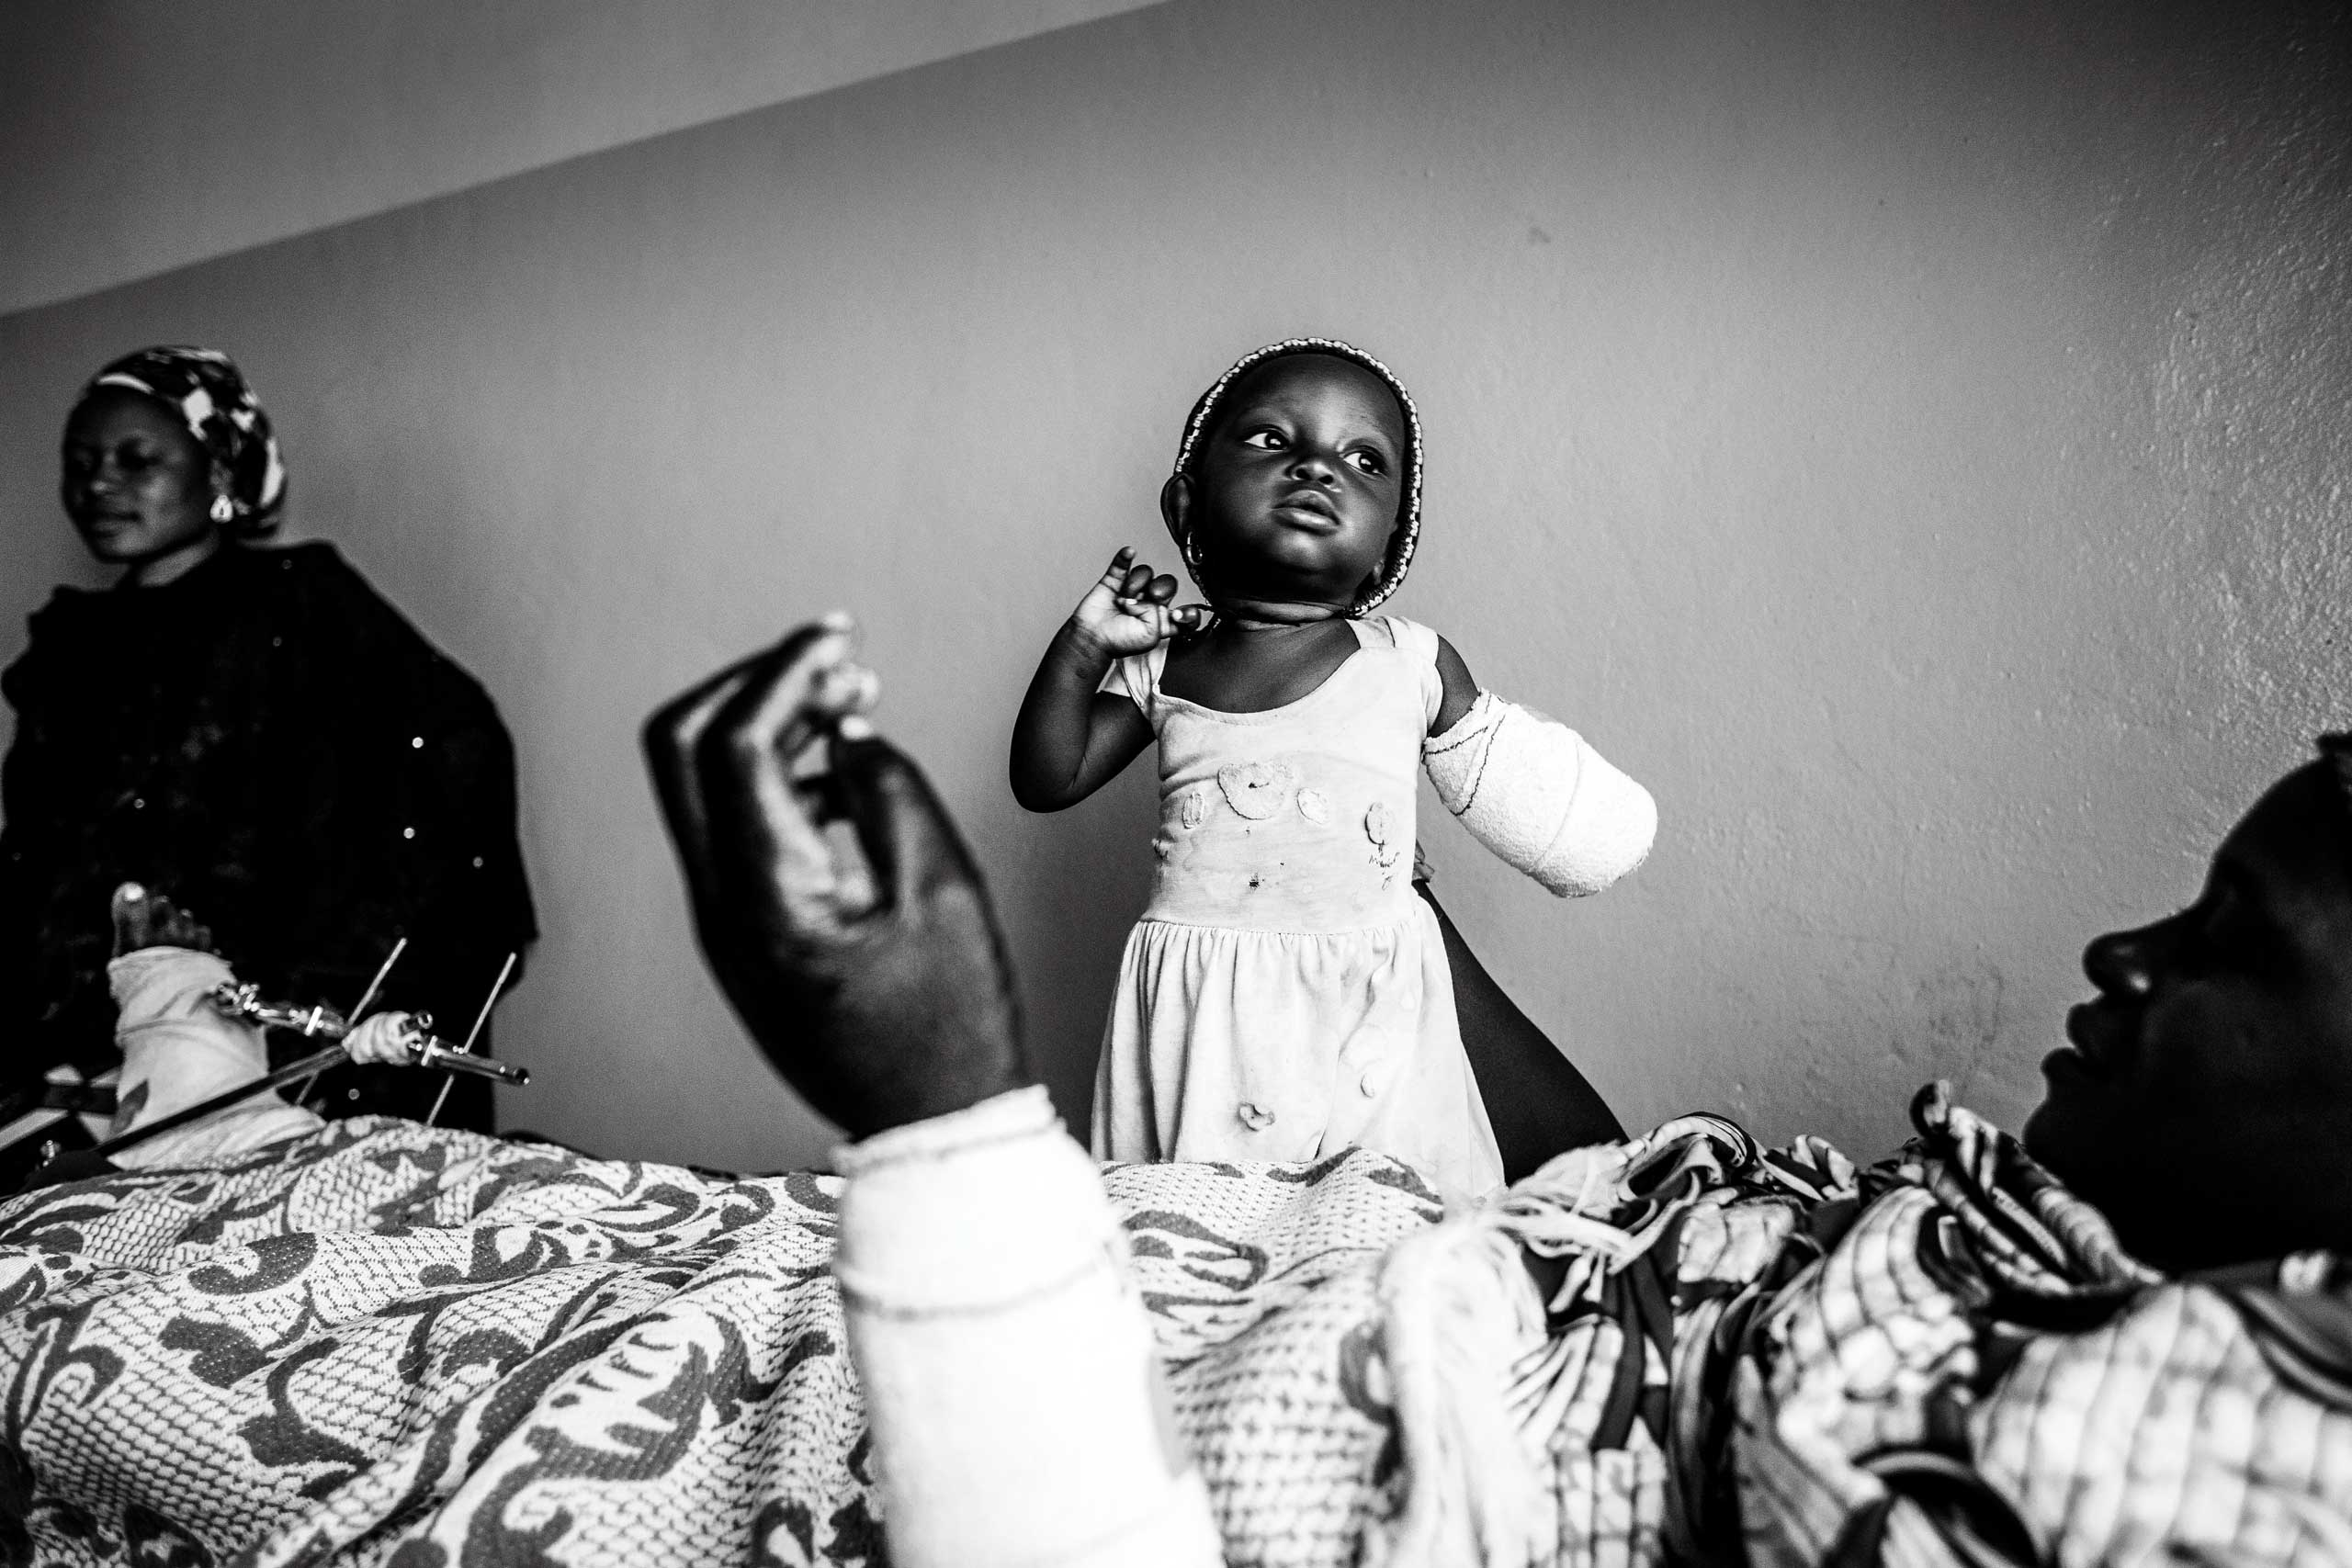 The Washington Post In Sight: The enemy within: A closer look at survivors of Boko Haram attacks across Northern NigeriaEight month old Afiniki lost her left arm in a Boko Haram attack on the Christian village of Chakawa in Jos, Nigeria, Jan. 2014.